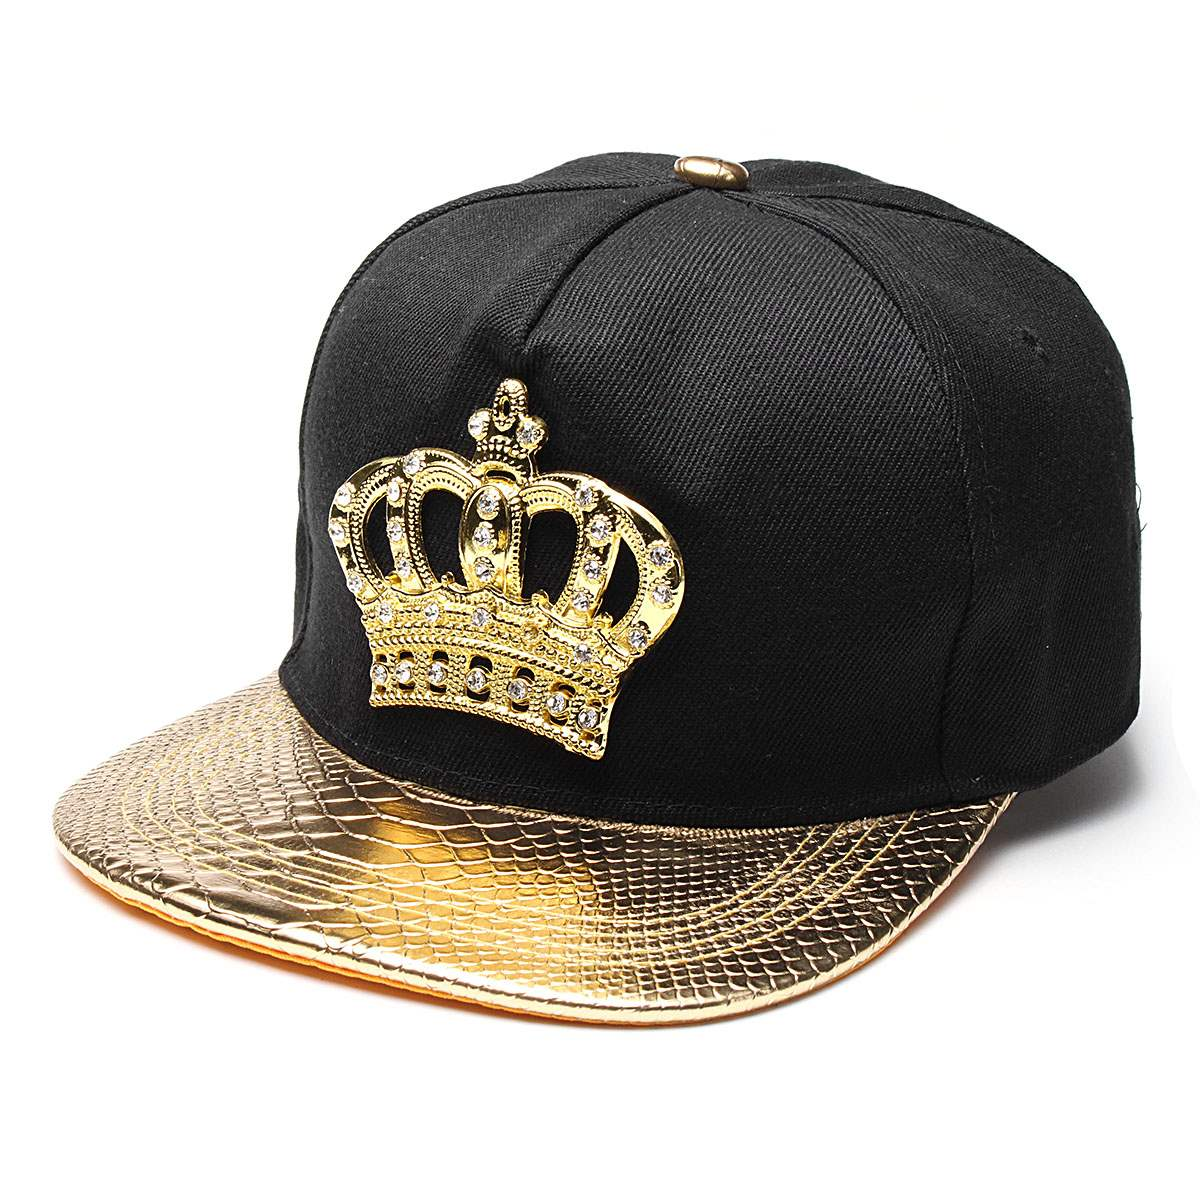 b7a694cb2f7 Men Women s Snapback Hat KING Crown Baseball Cap Adjustable Hip Hop Dad Hats  Gold Silver Black Peaked Rhinestone Crystal Sun Cap